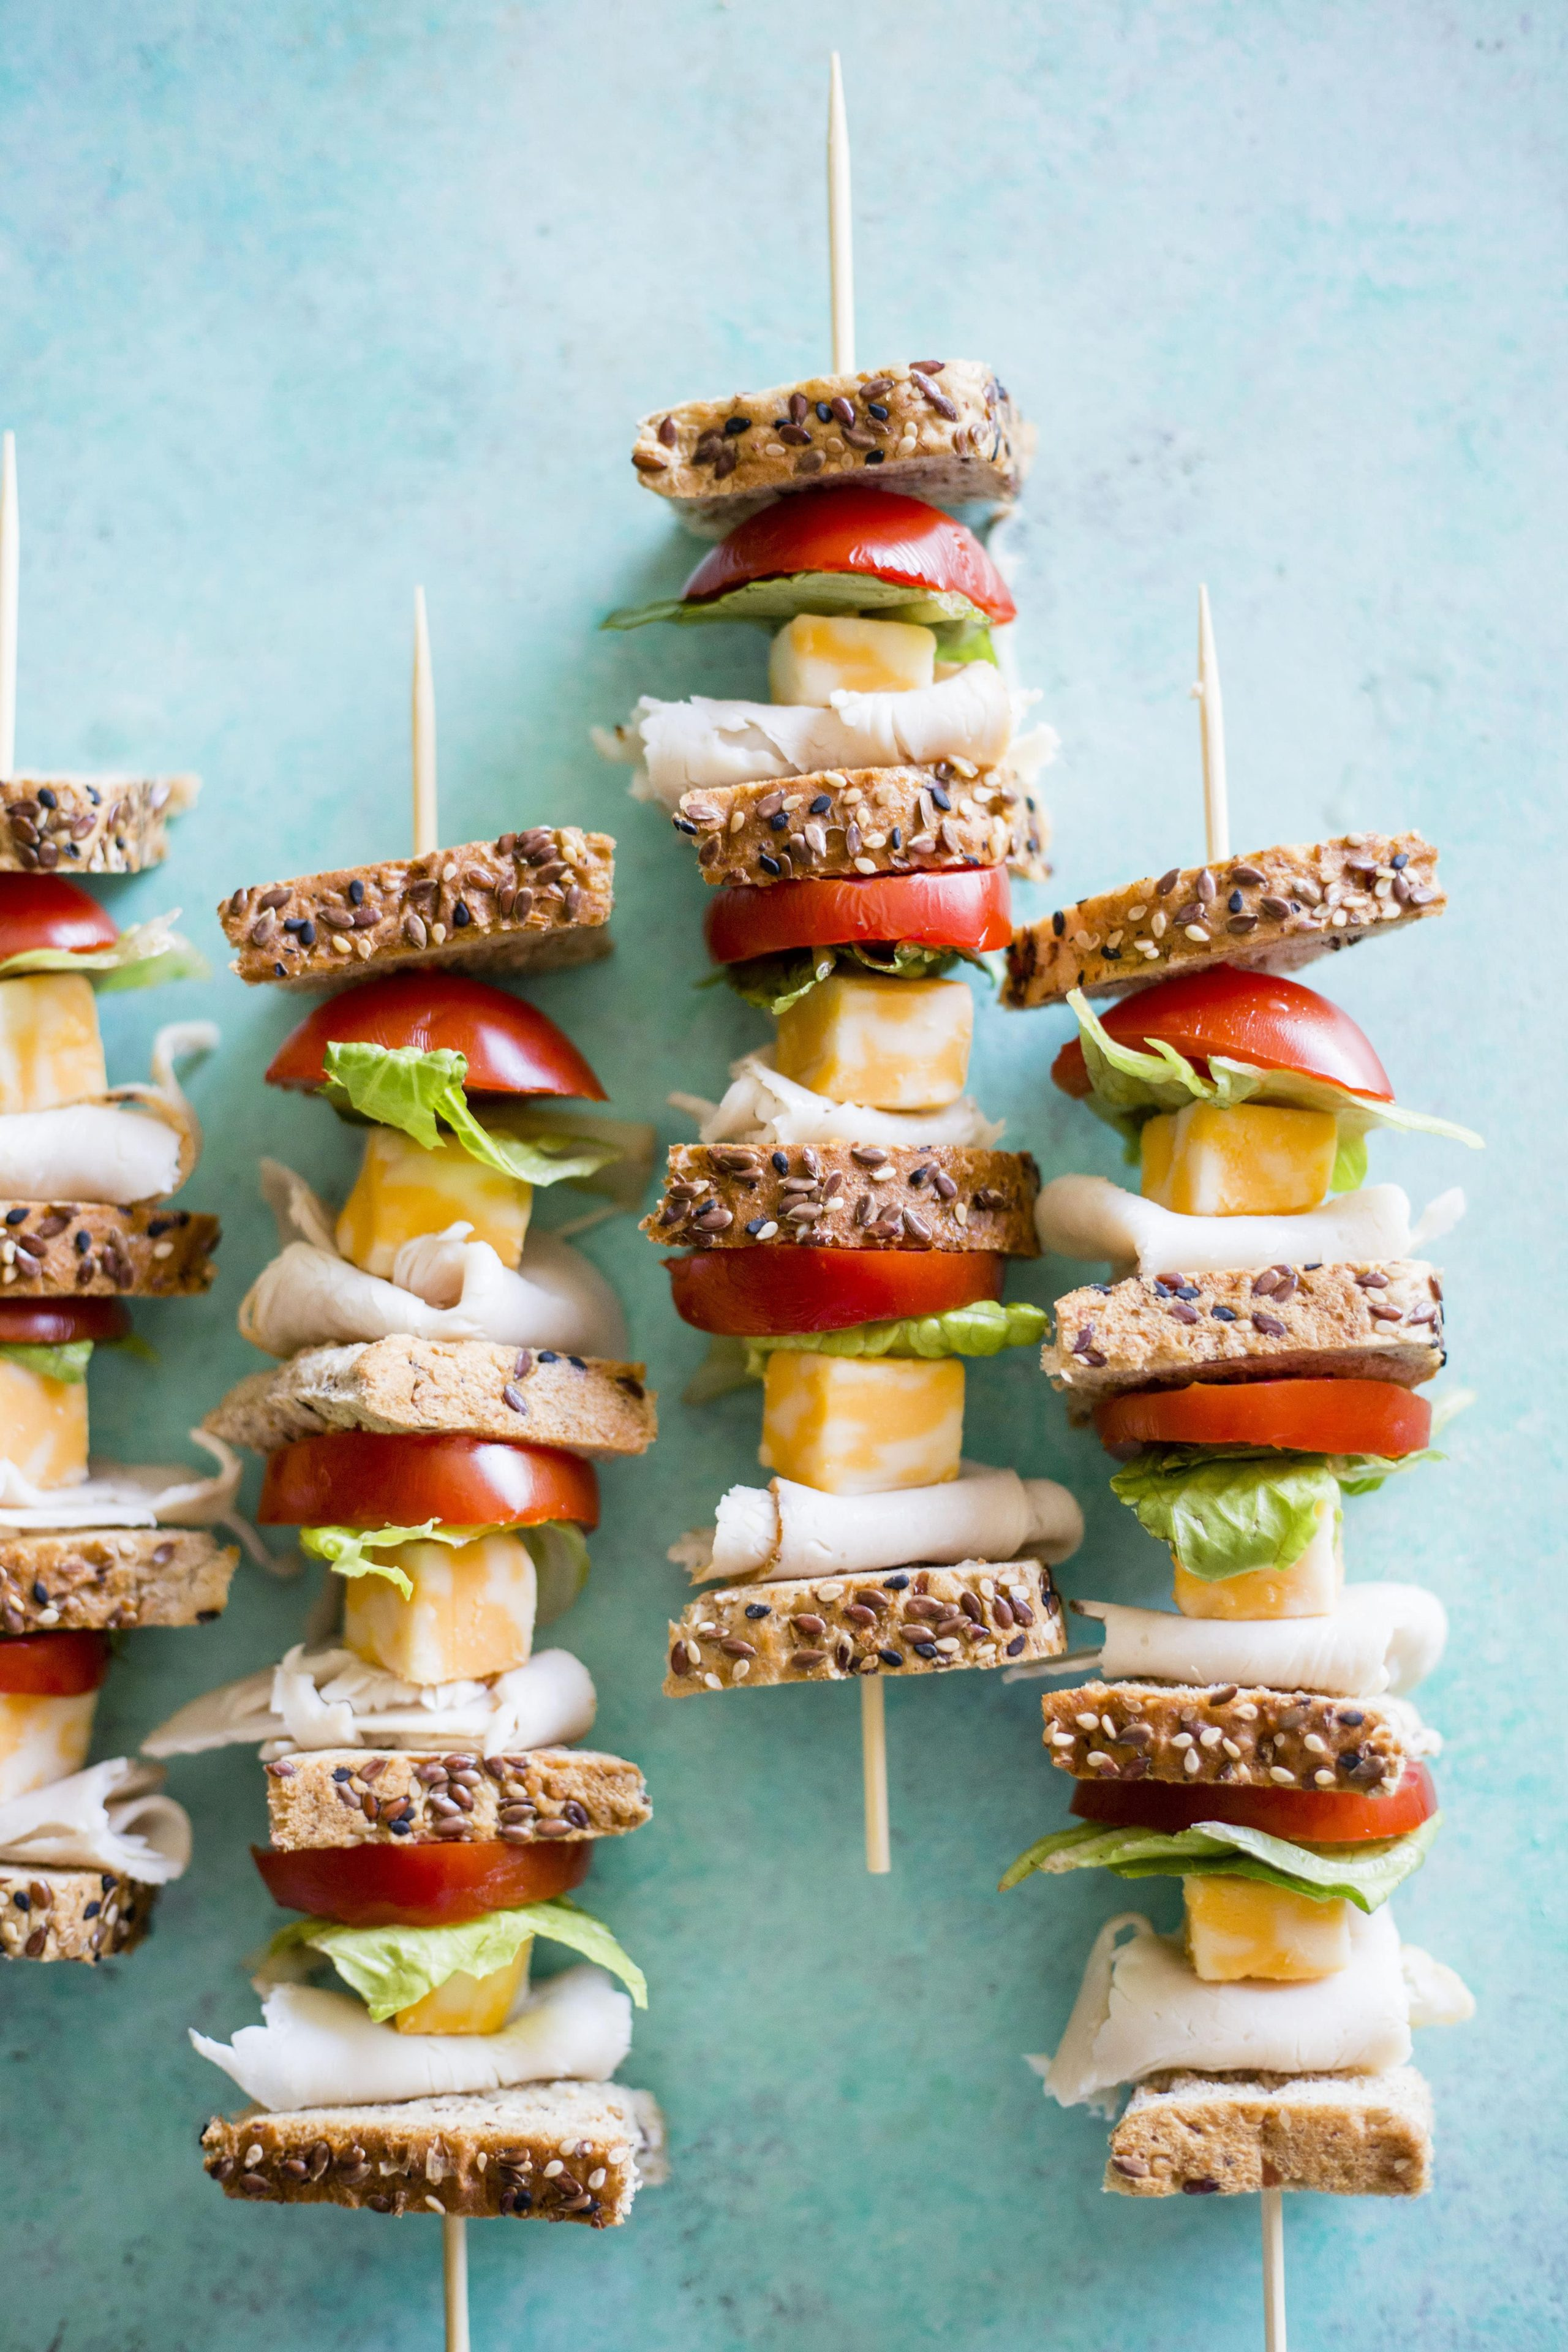 Turkey Sandwich Skewers | A tasty, deconstructed FUN way to enjoy your next sandwich! | thealmondeater.com